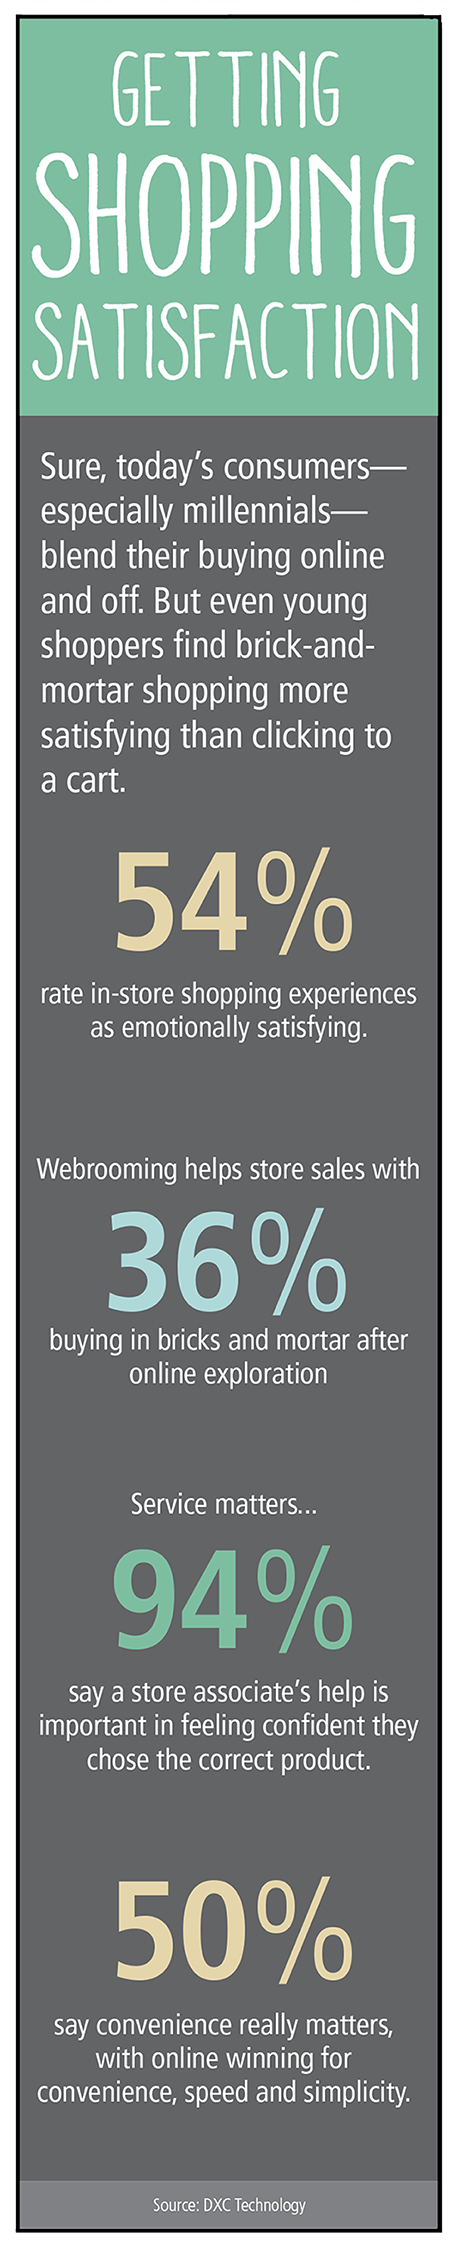 reasons store shopping is more satisfying than online options